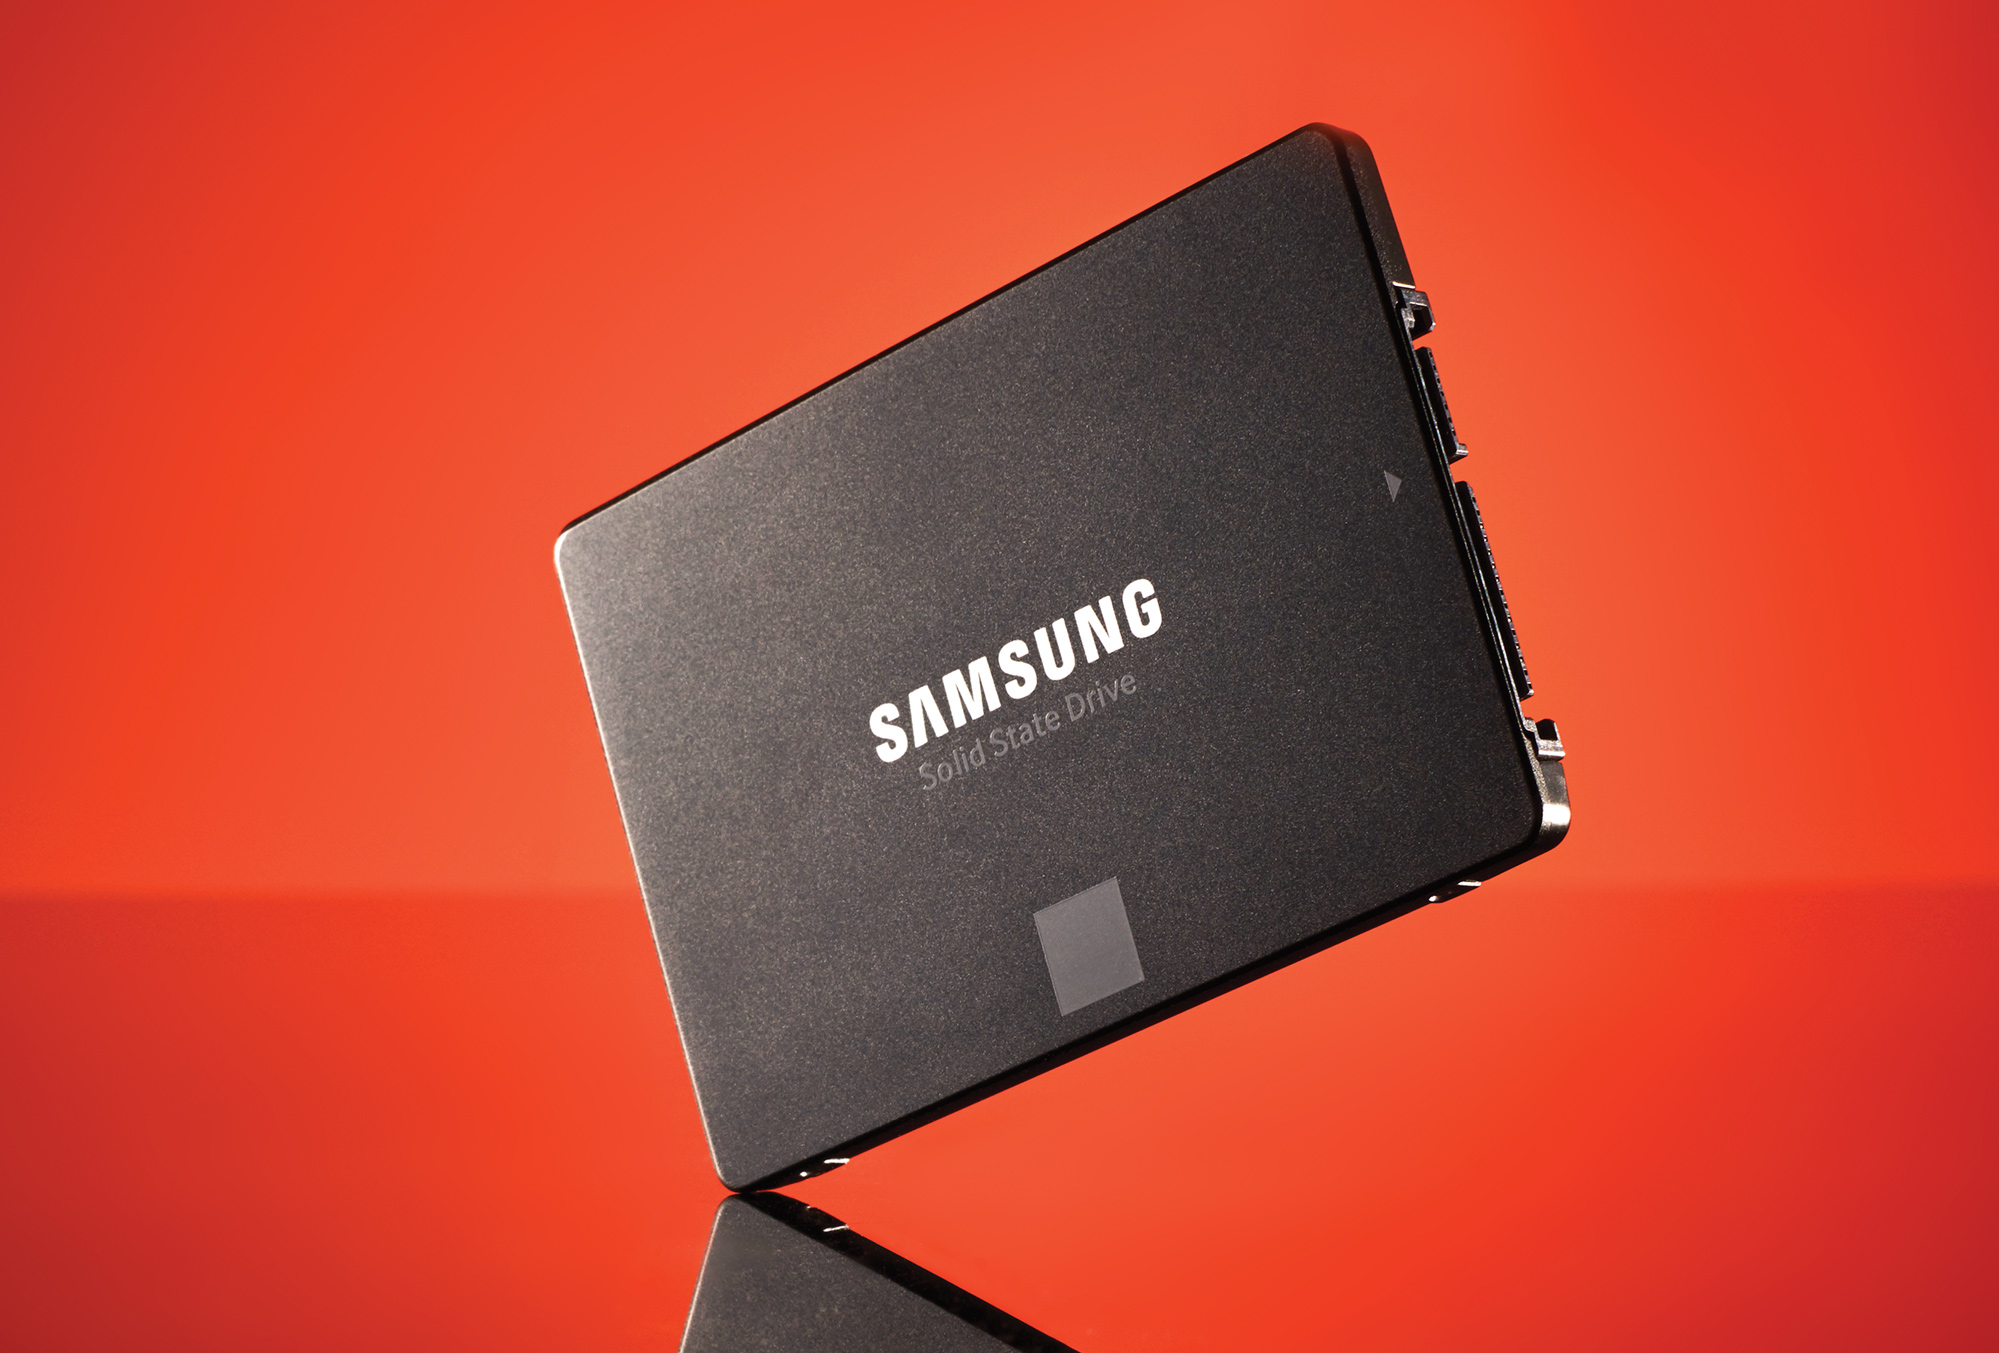 Samsung 860 Evo 500 GB [TEST]: Langlivet SSD